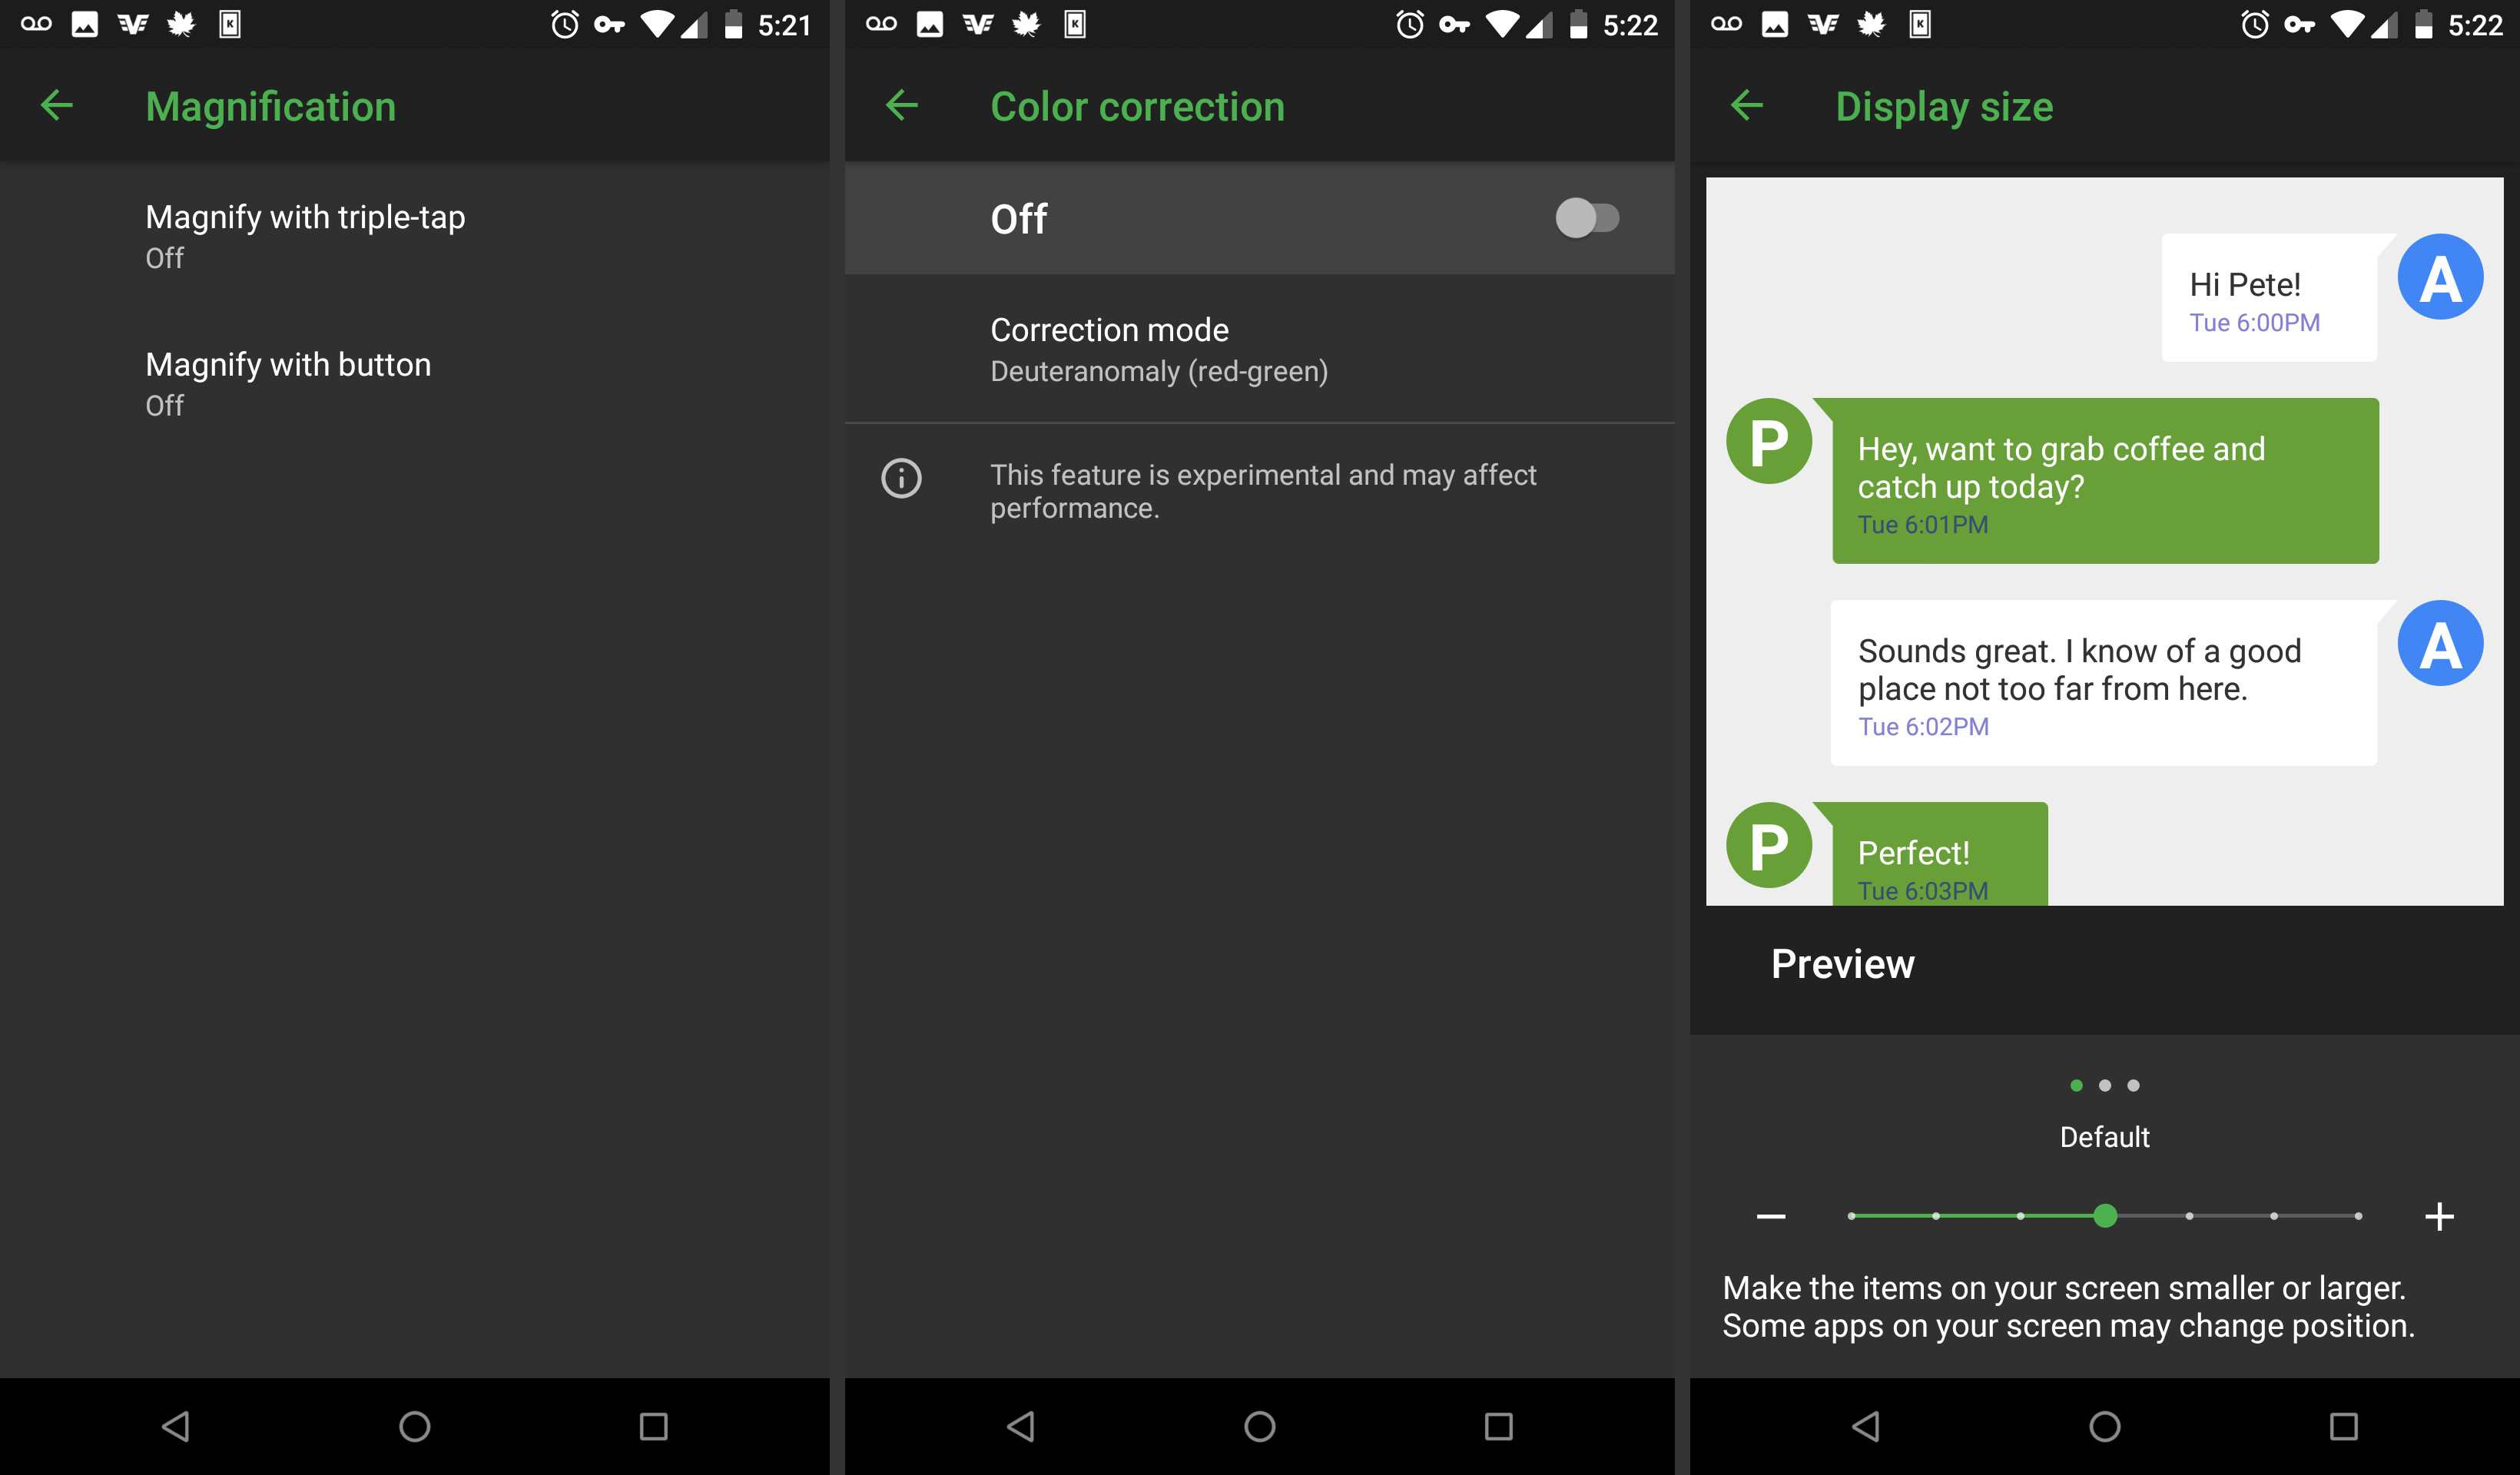 How to use Android's accessibility features